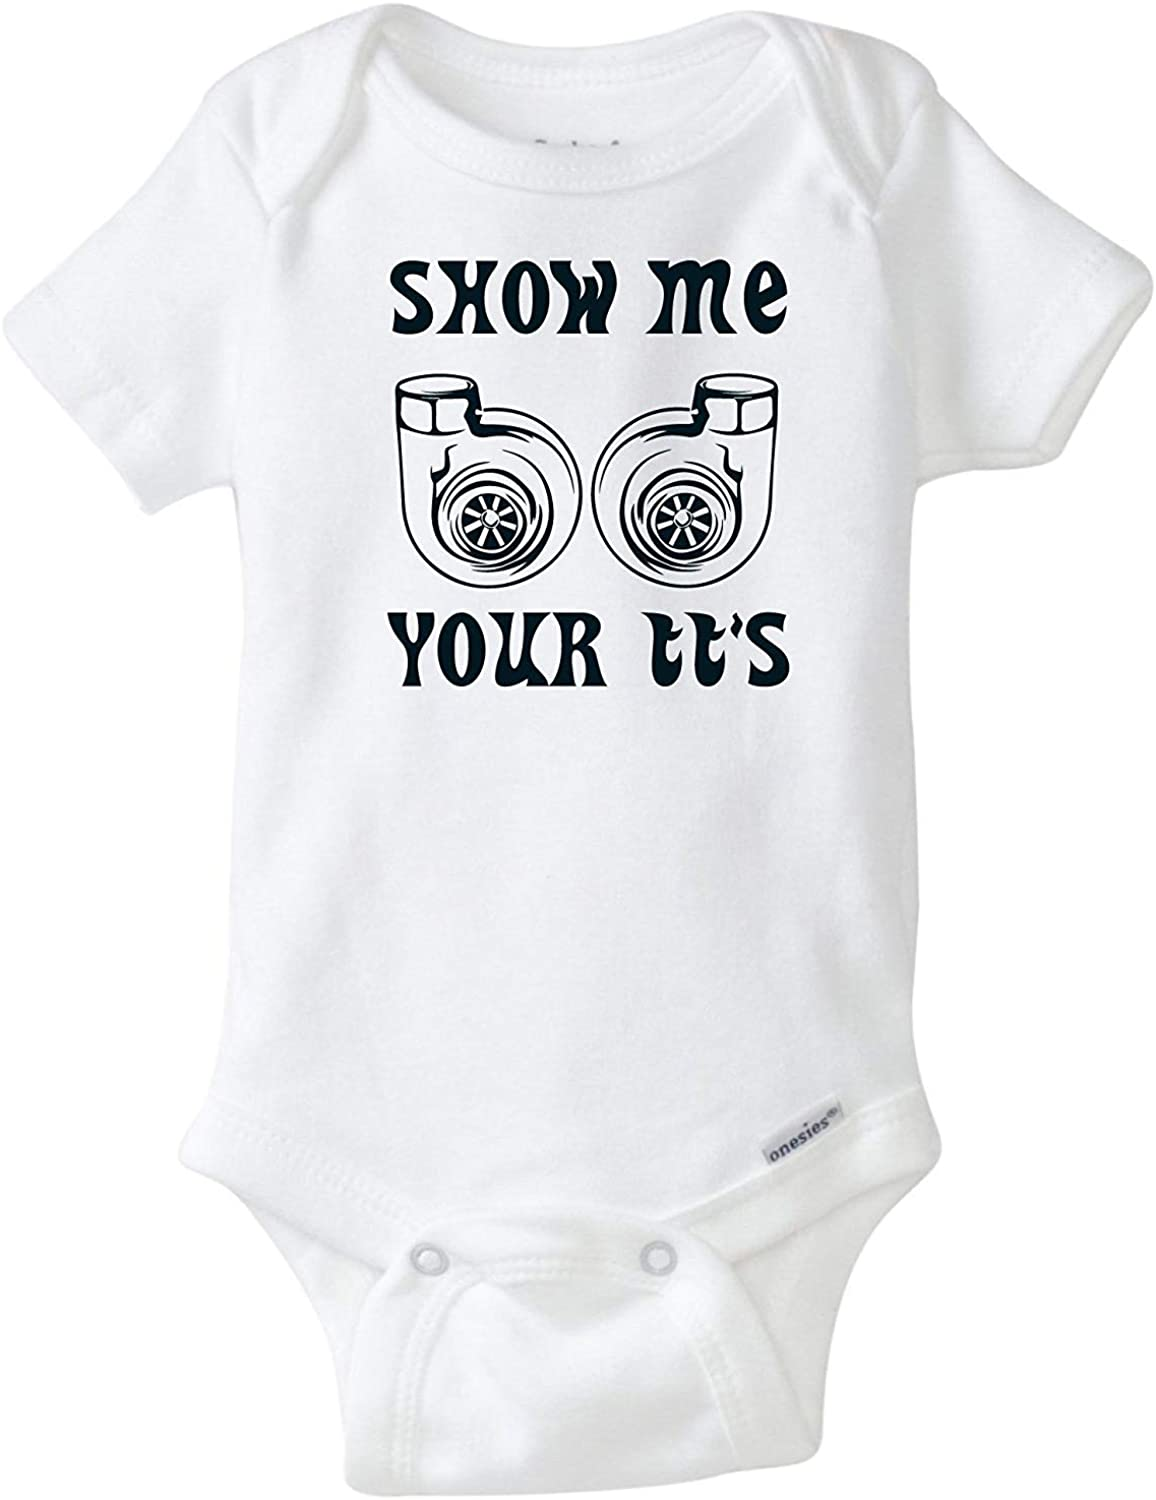 Unisex Baby Clothes Funny Baby Infant /& Baby Clothing I Can/'t Even Baby Bodysuit and T-Shirt Toddler Tshirt